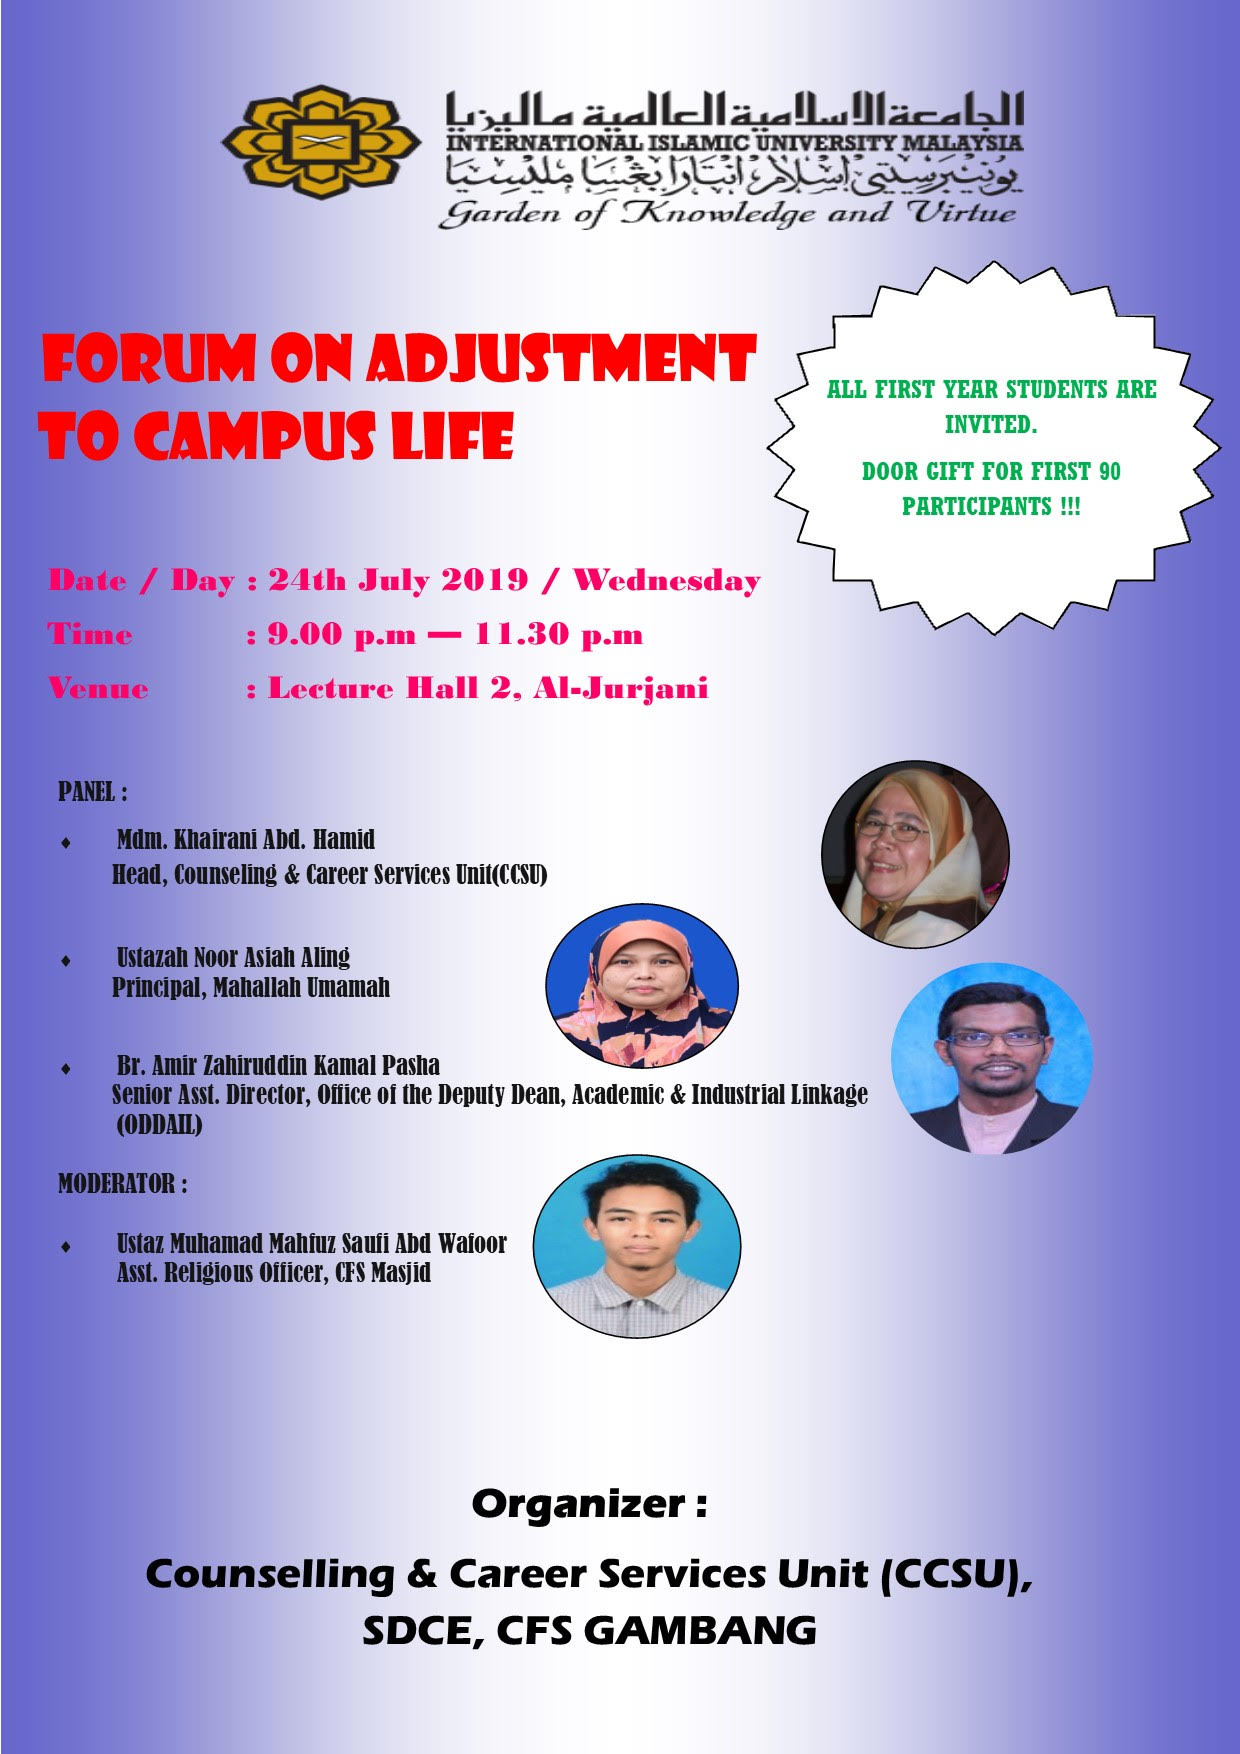 FORUM ON ADJUSTMENT TO CAMPUS LIFE